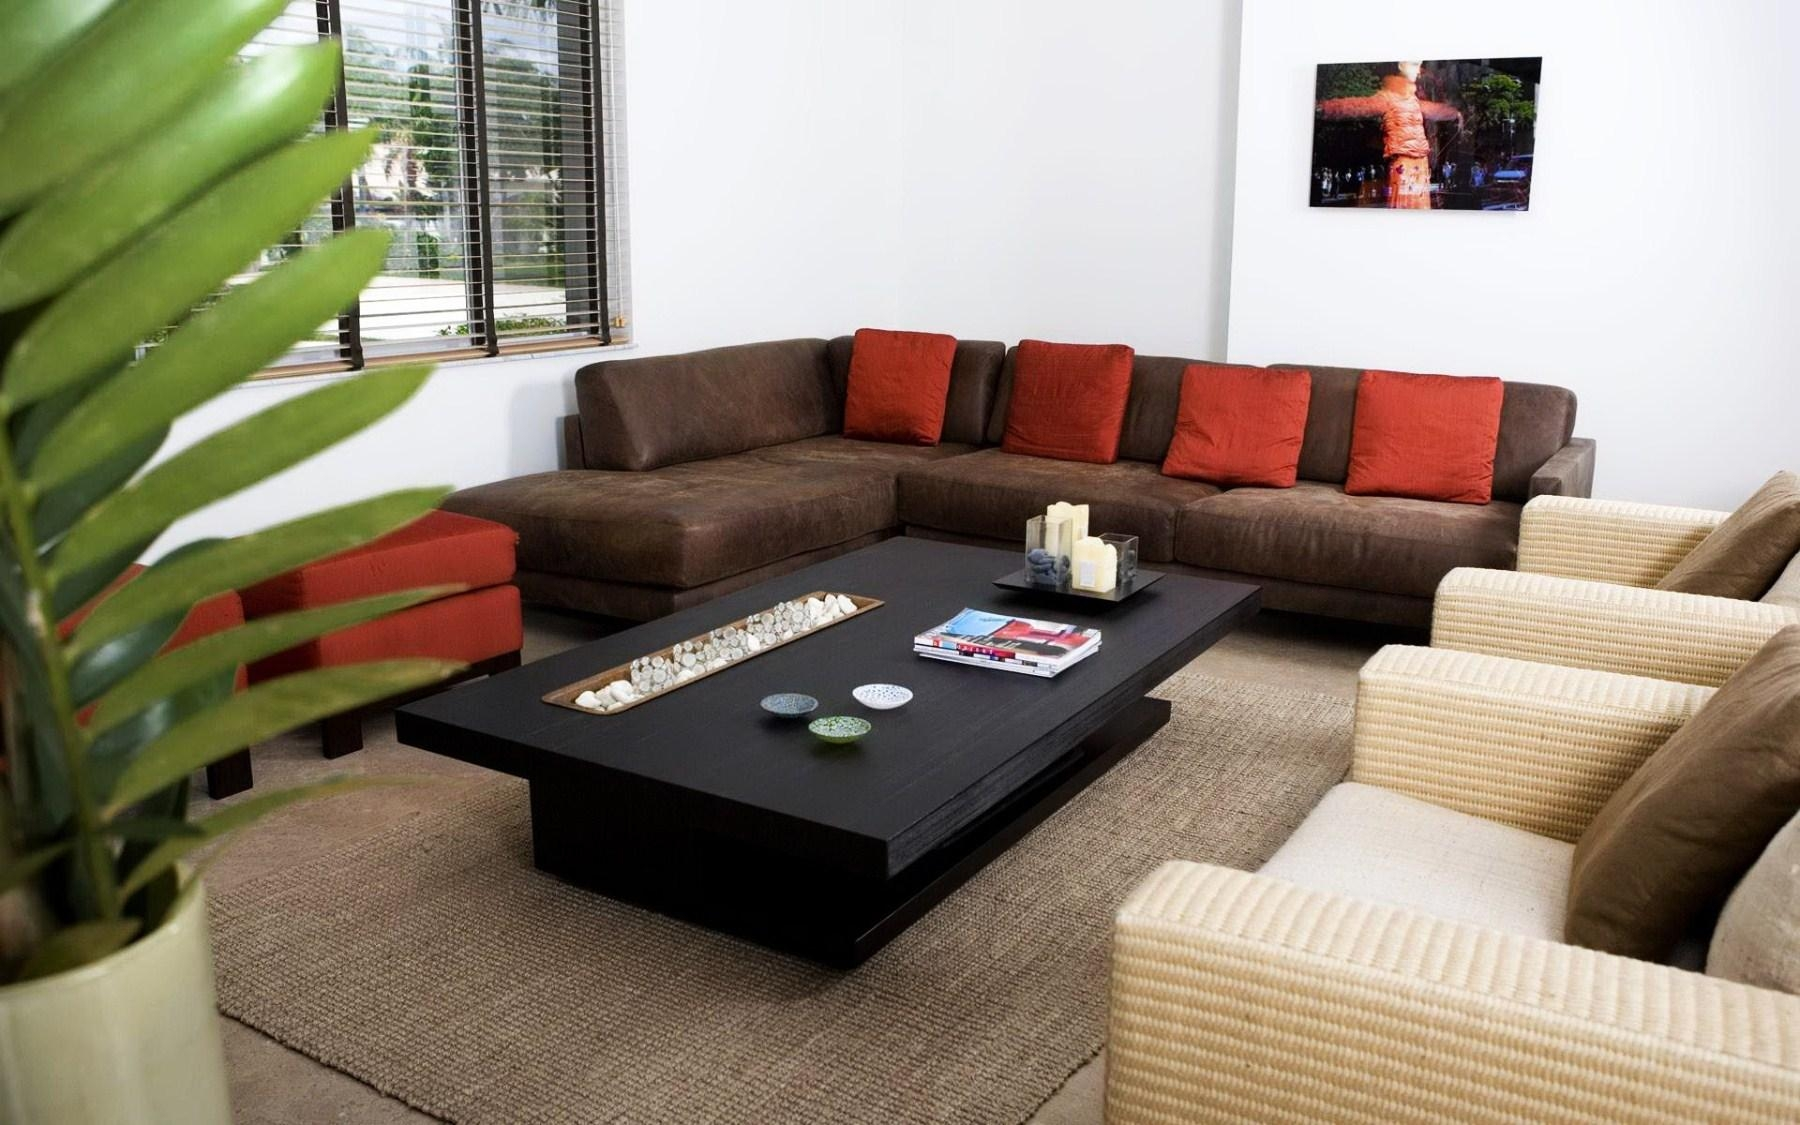 Brilliant Modern Brown Couches Uptown Sofaand Decor With Regard To Brown Sofas Decorating (Image 6 of 20)